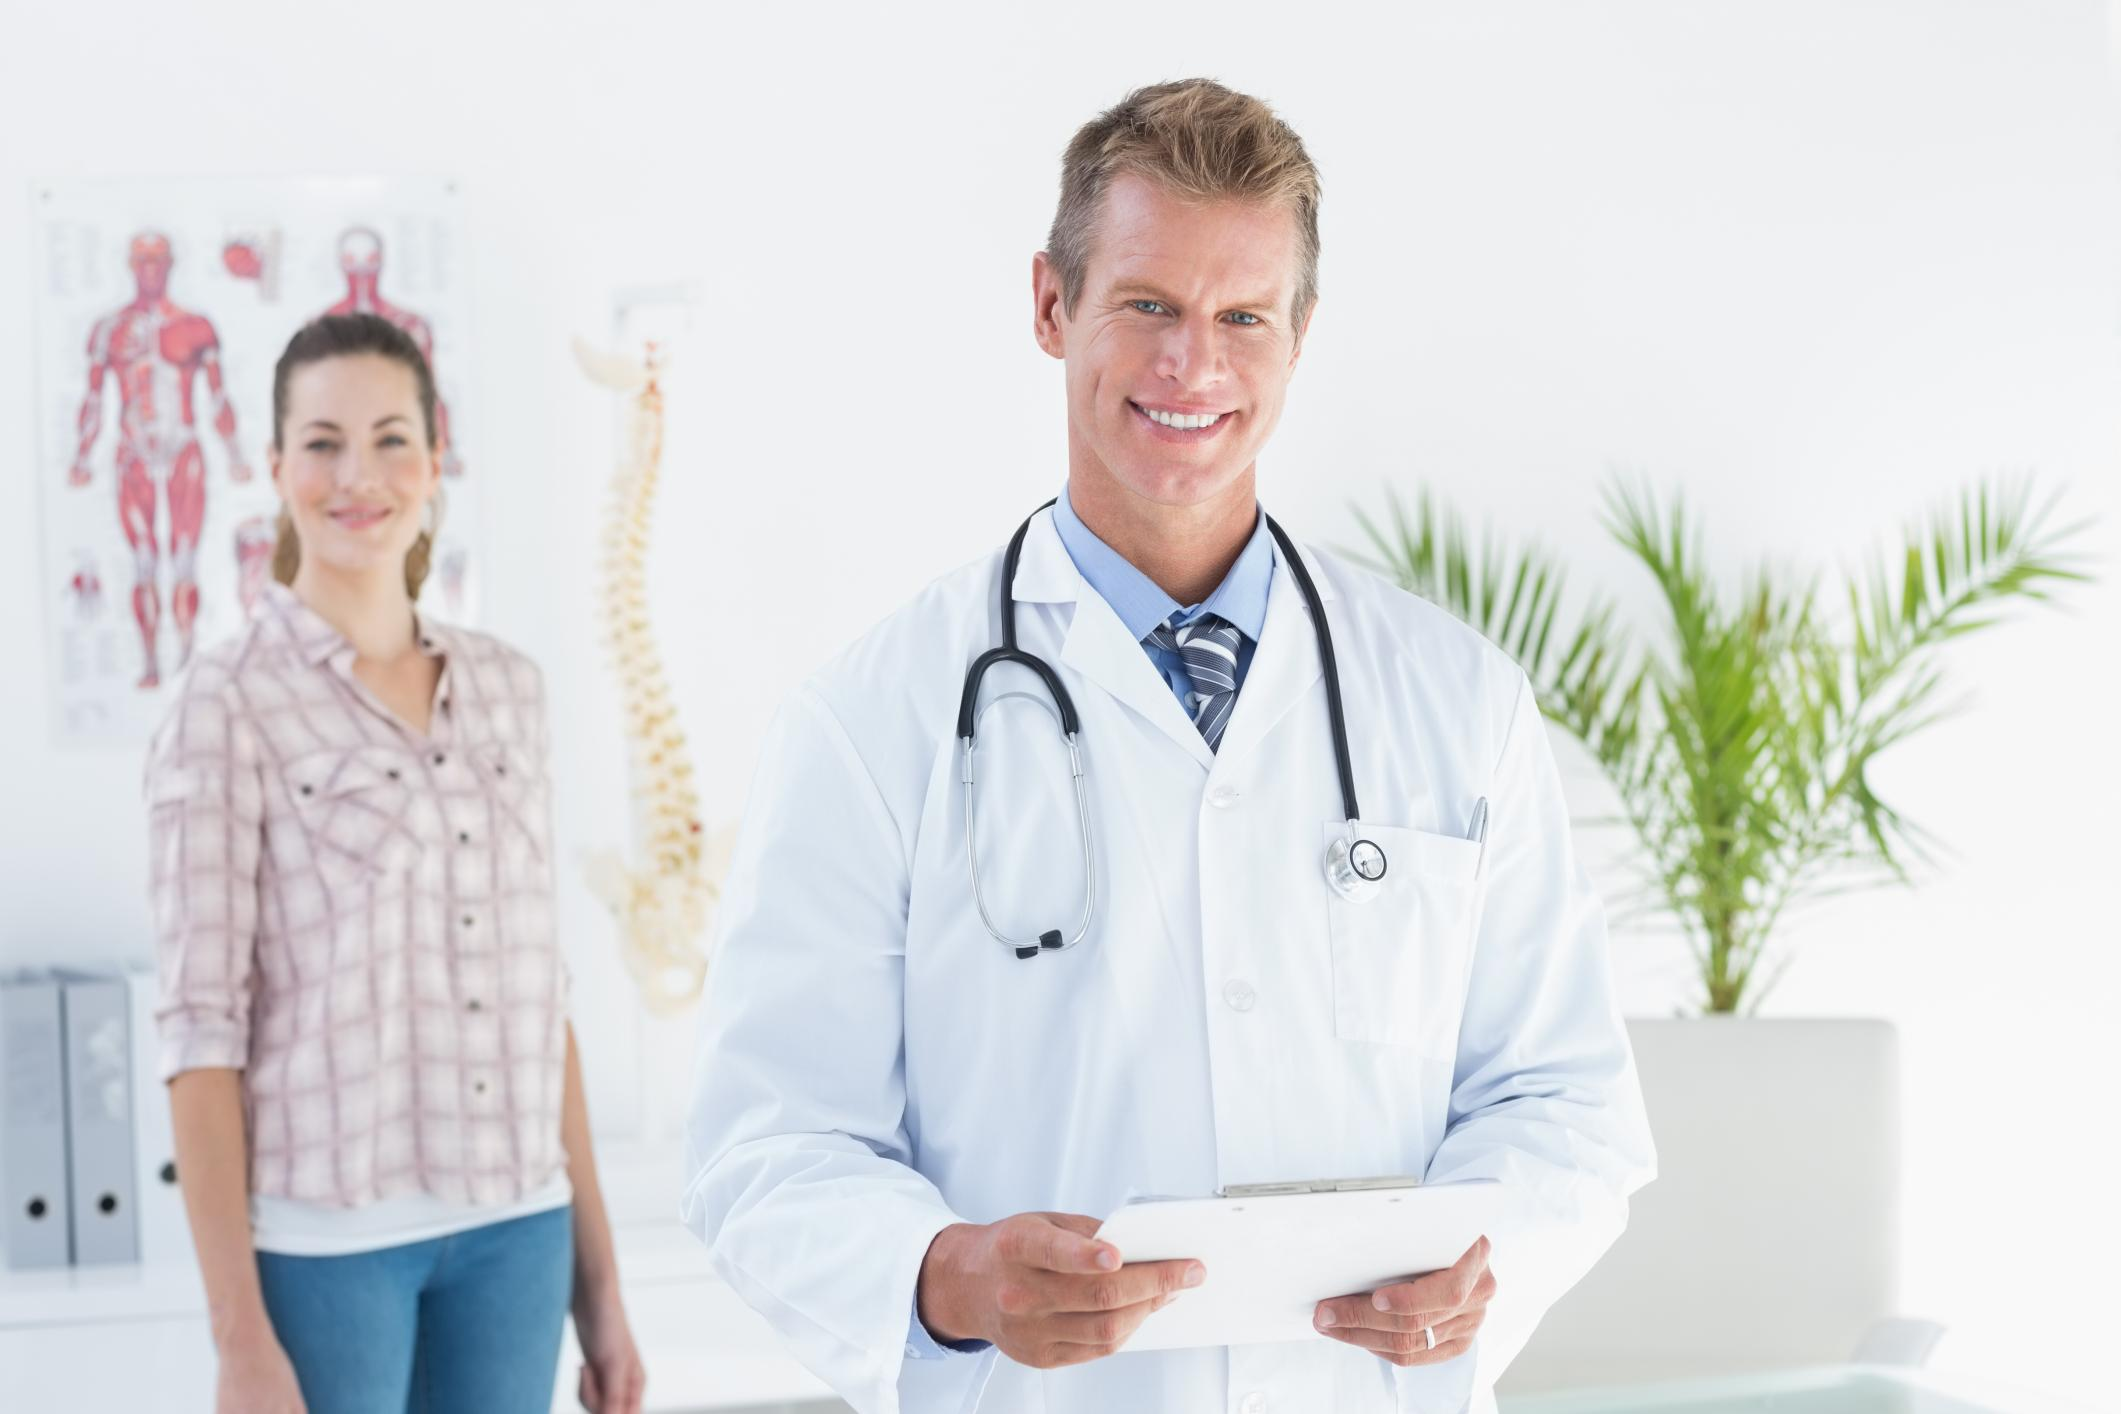 Roseville Chiropractor - About